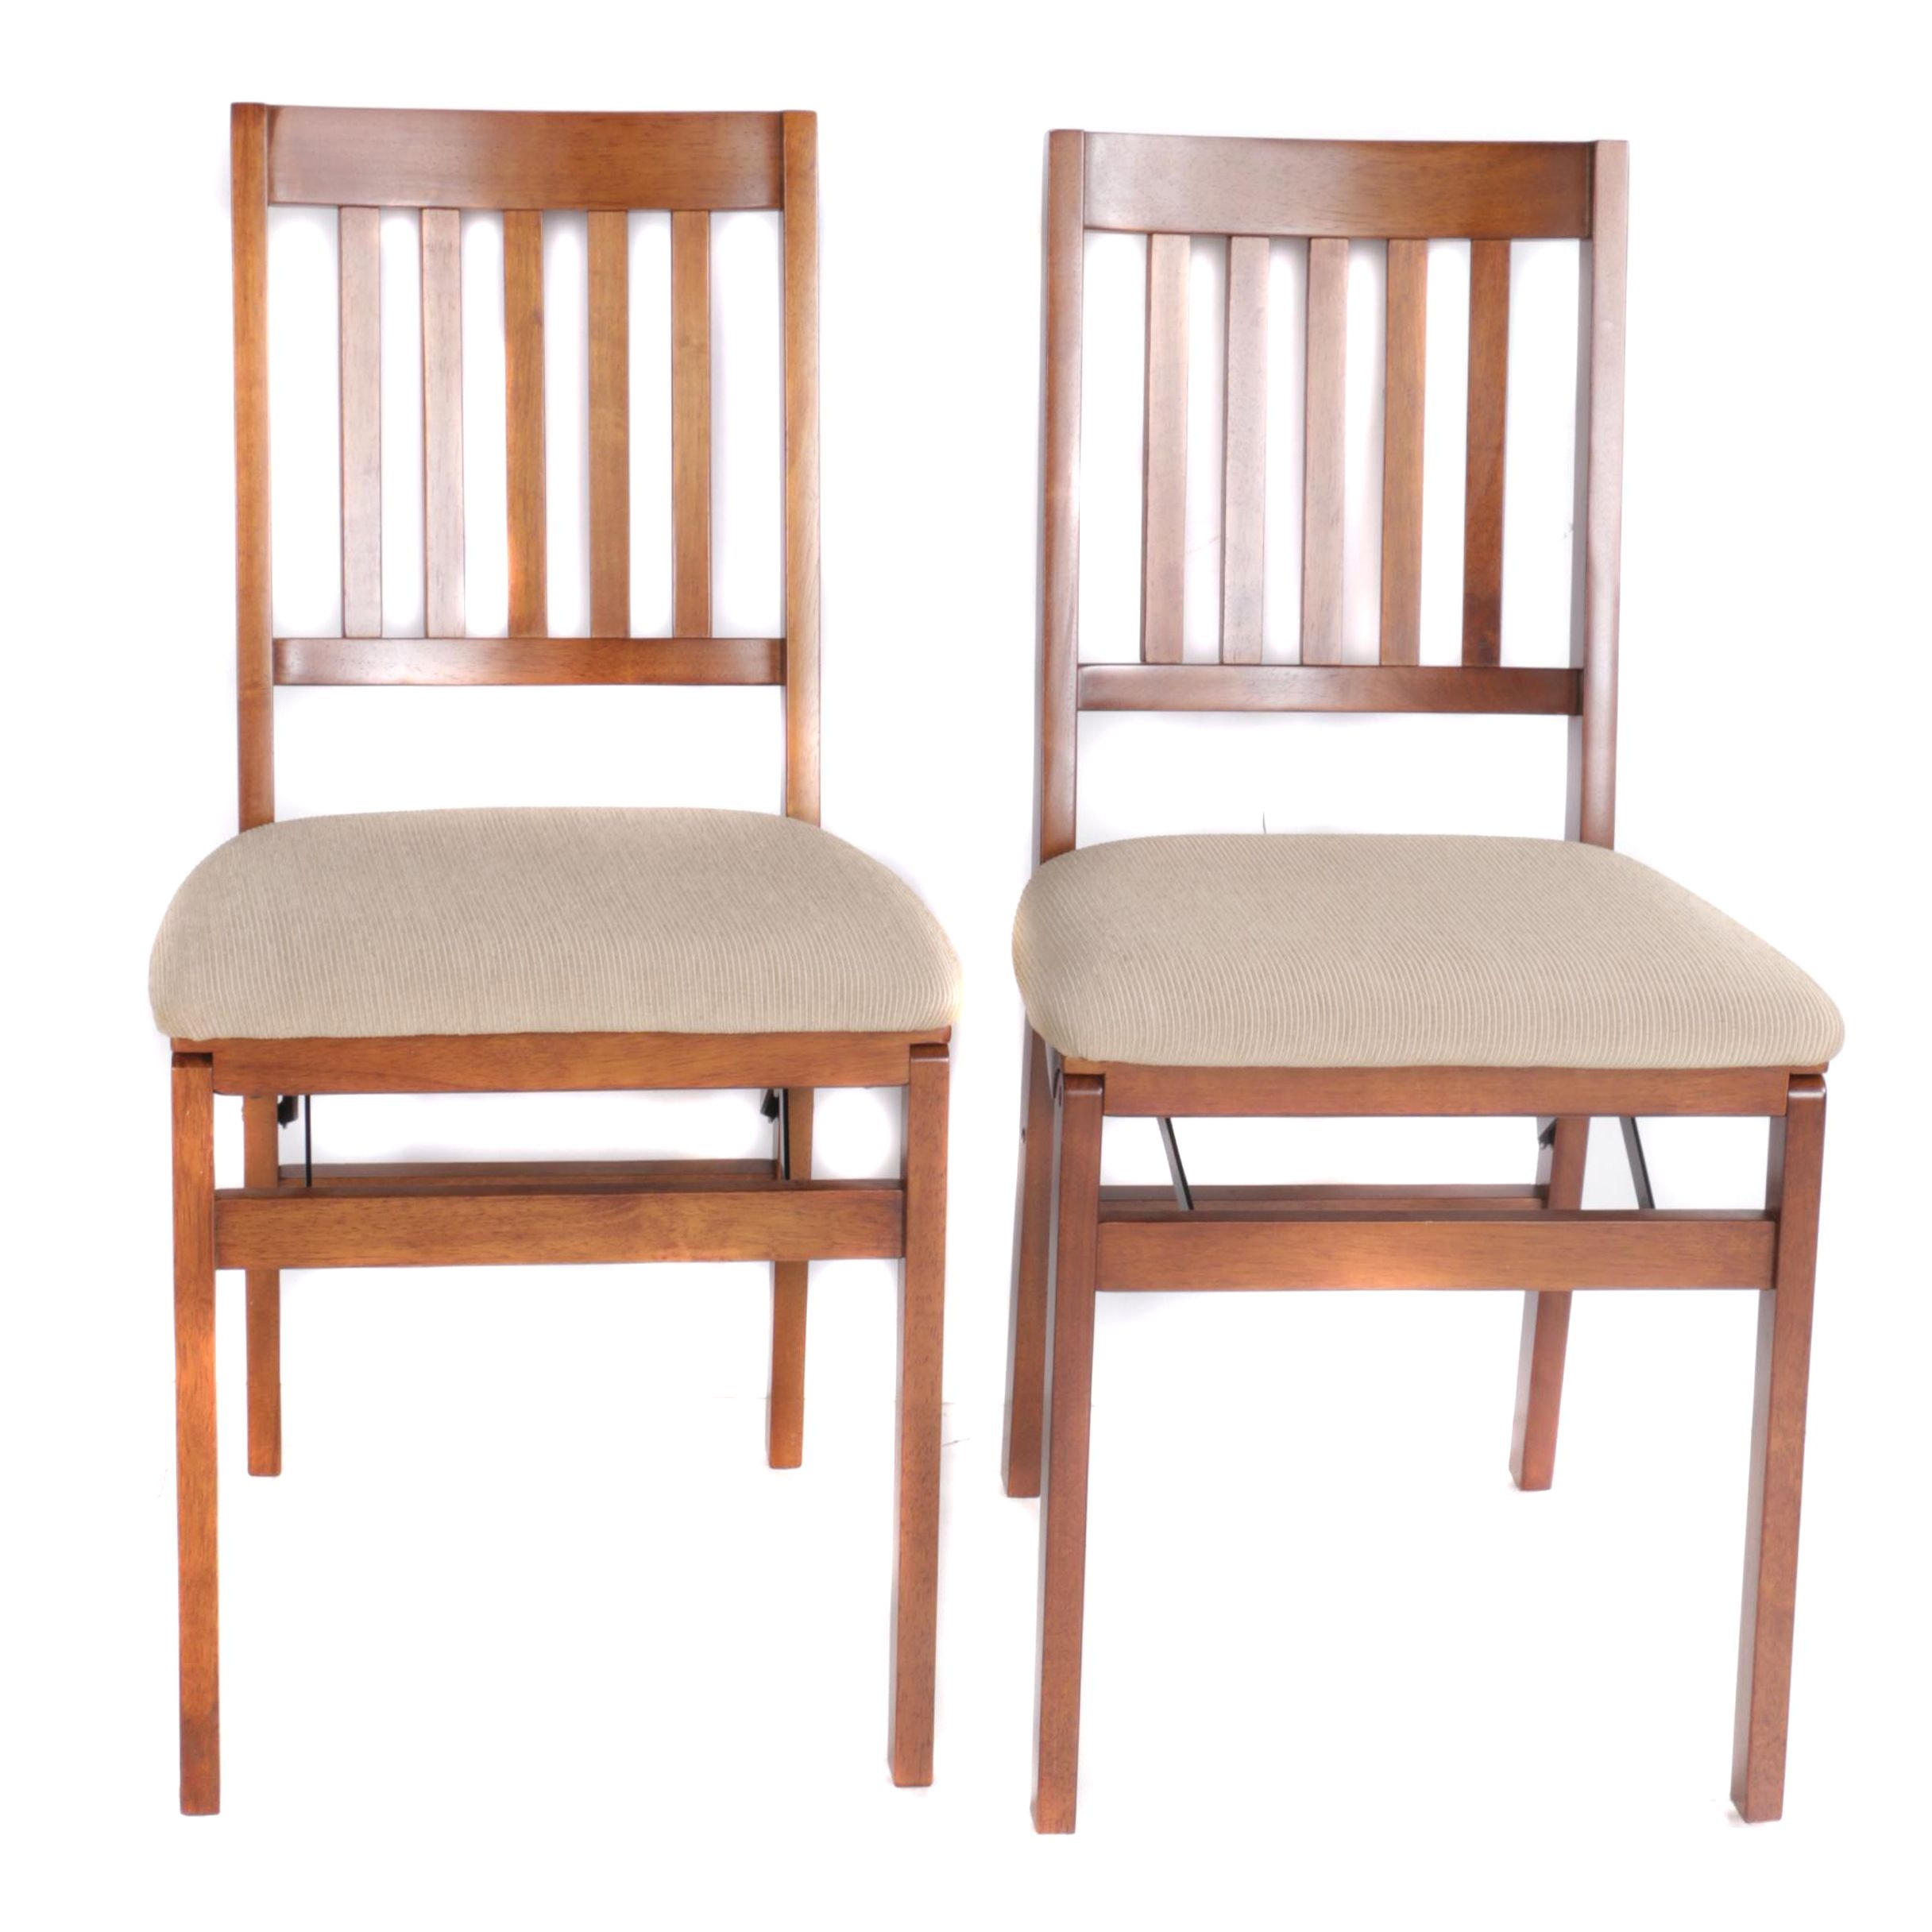 Pair of Slat Back Folding Chairs